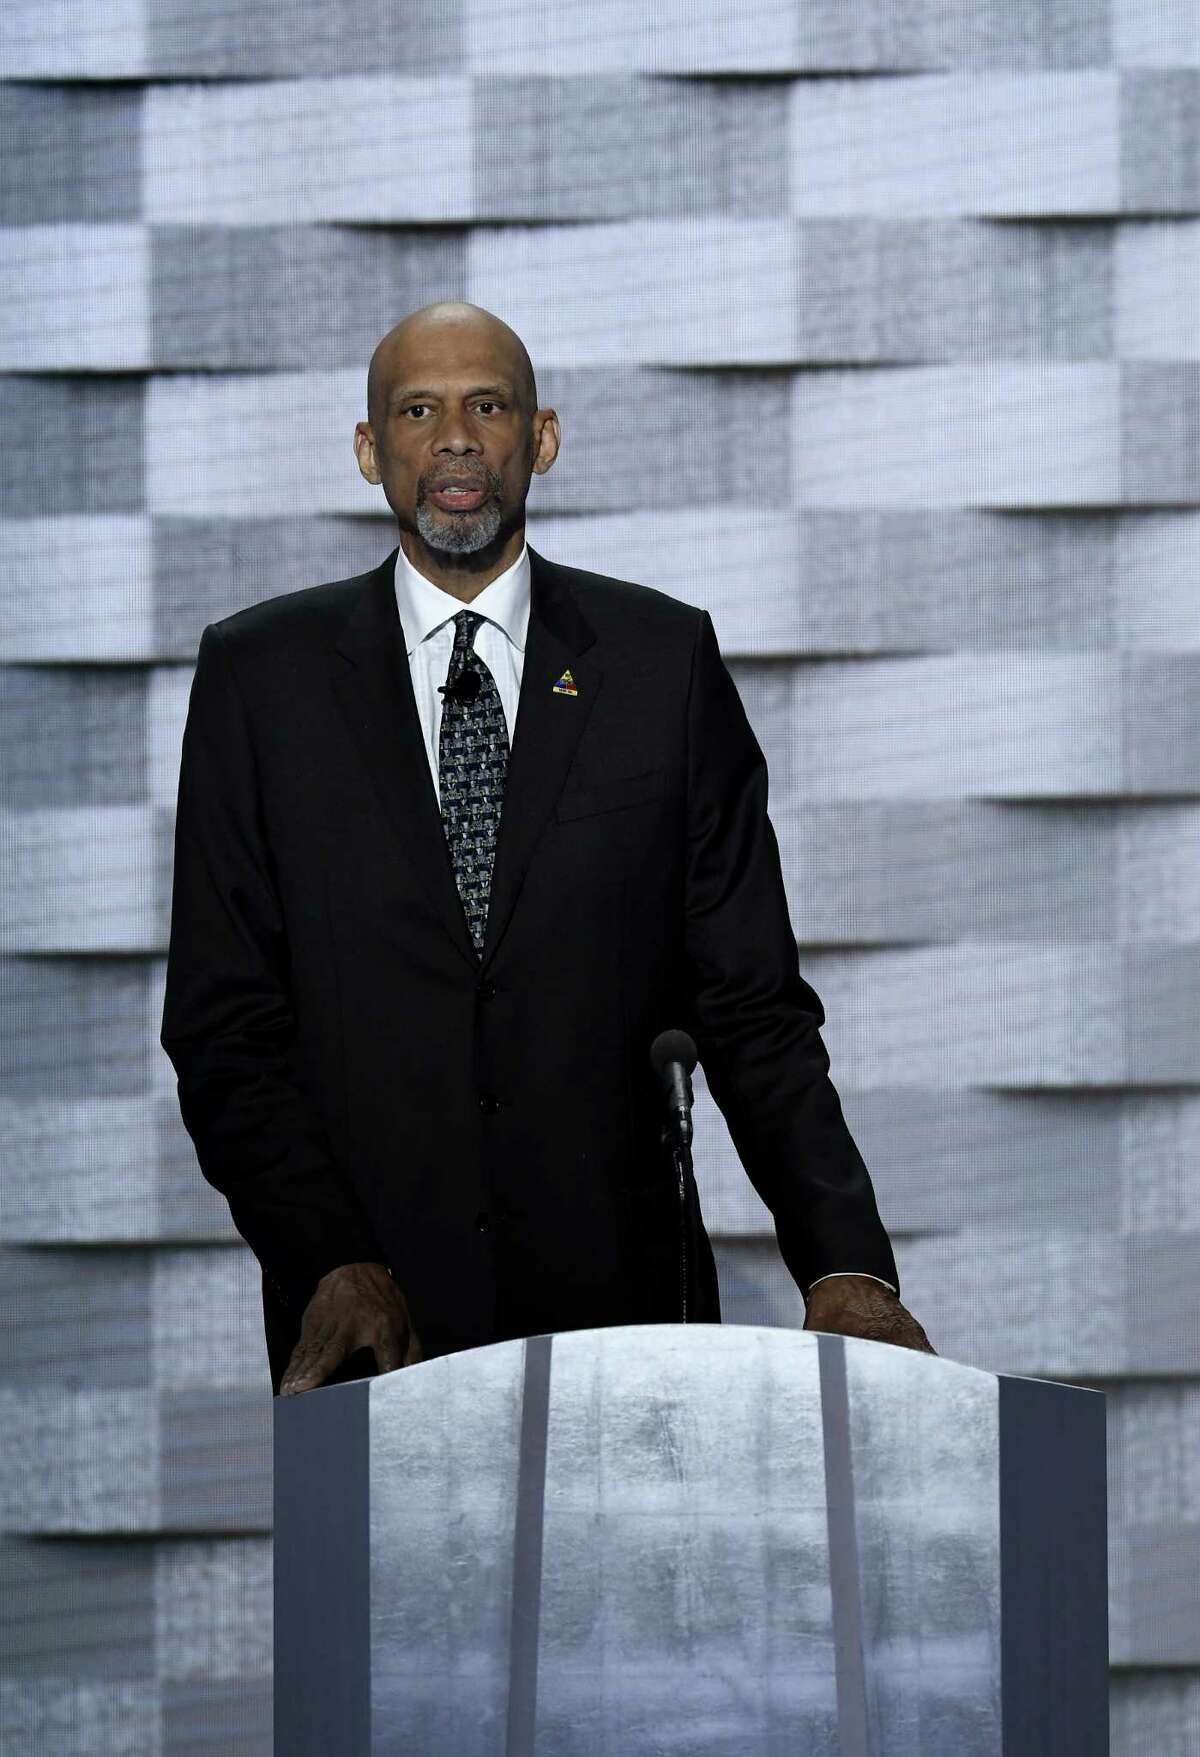 Retired NBA player Kareem Abdul-Jabbar speaks during the Democratic National Convention (DNC) in Philadelphia, Pennsylvania, U.S., on Thursday, July 28, 2016. Division among Democrats has been overcome through speeches from two presidents, another first lady and a vice-president, who raised the stakes for their candidate by warning that her opponent posed an unprecedented threat to American diplomacy. Photographer: David Paul Morris/Bloomberg